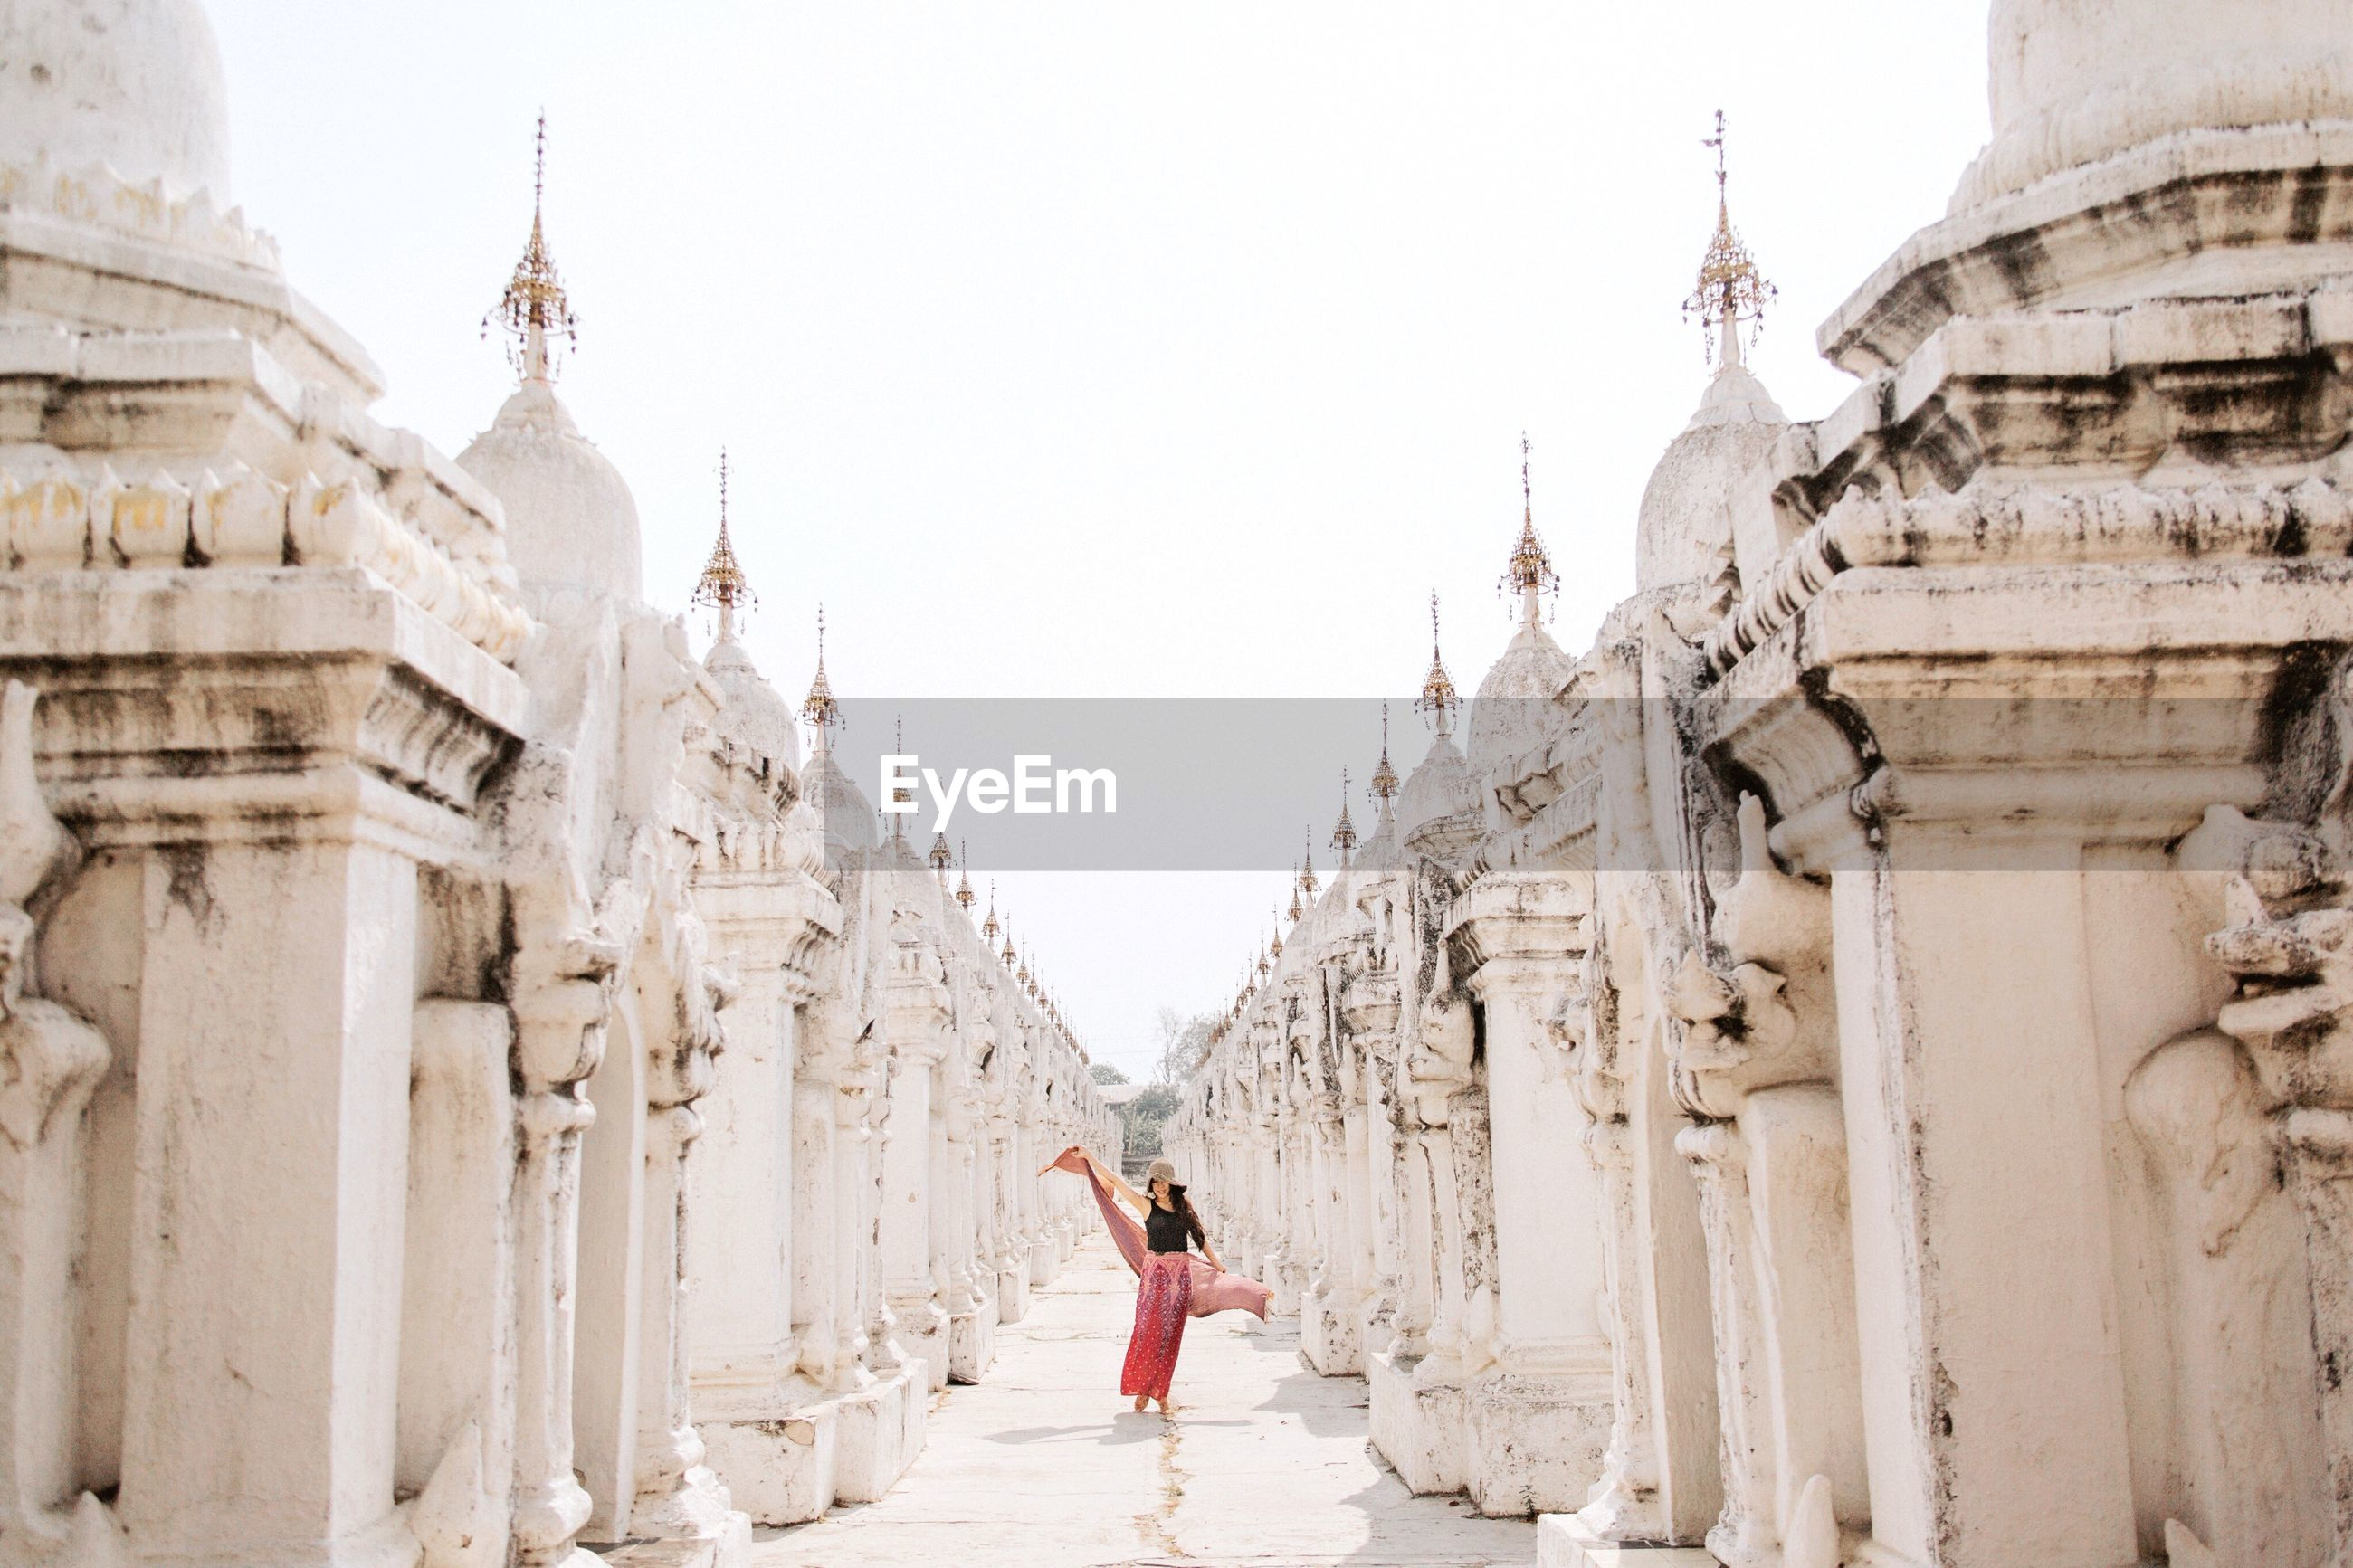 Woman standing outside temple against clear sky